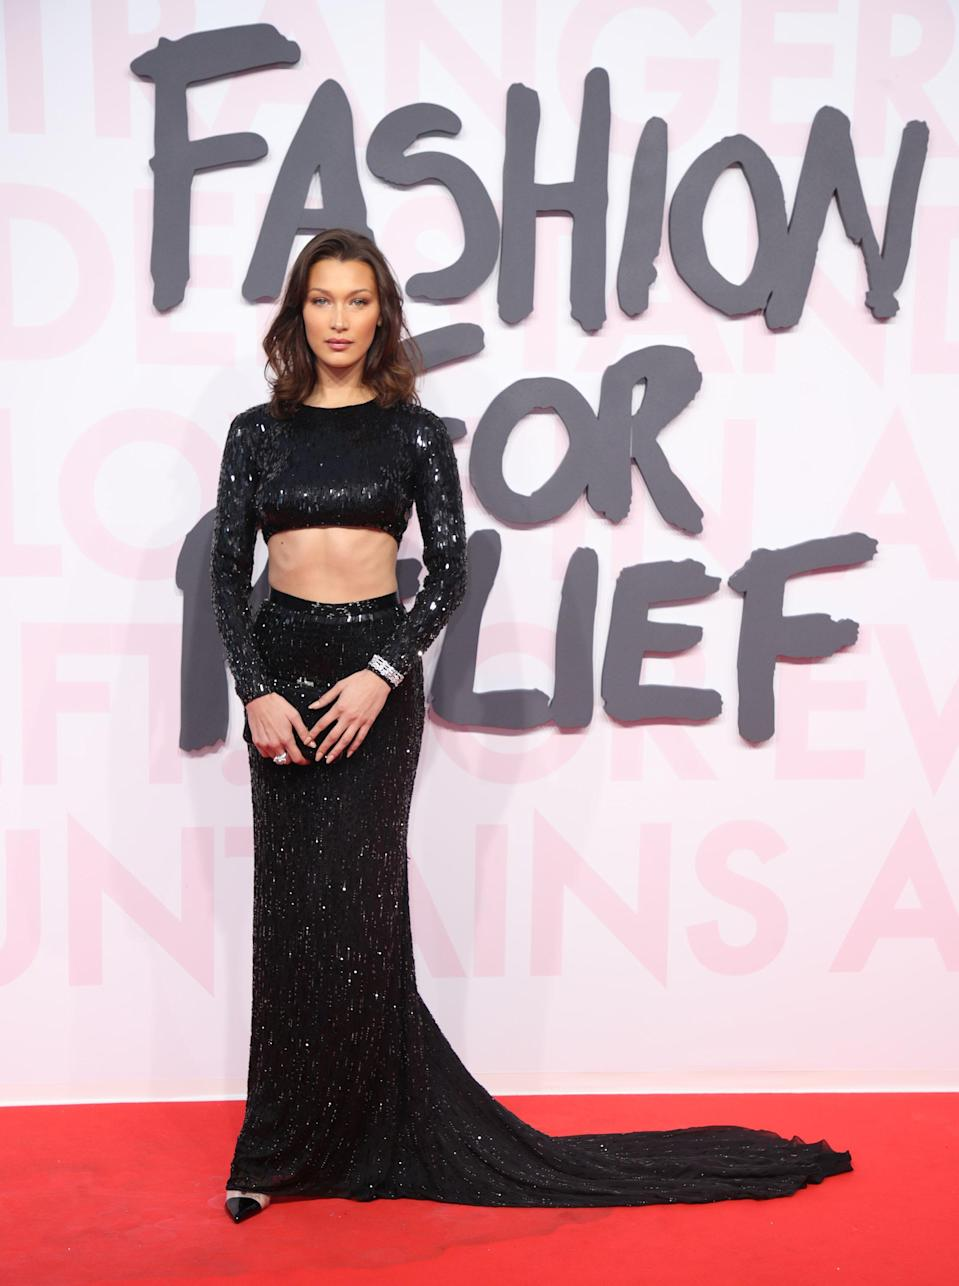 <p>At the annual Fashion For Relief Catwalk show held this year in Cannes, Bella Hadid wore a sequinned cut-out Julien Macdonald dress before hitting the catwalk. [Photo: Getty] </p>